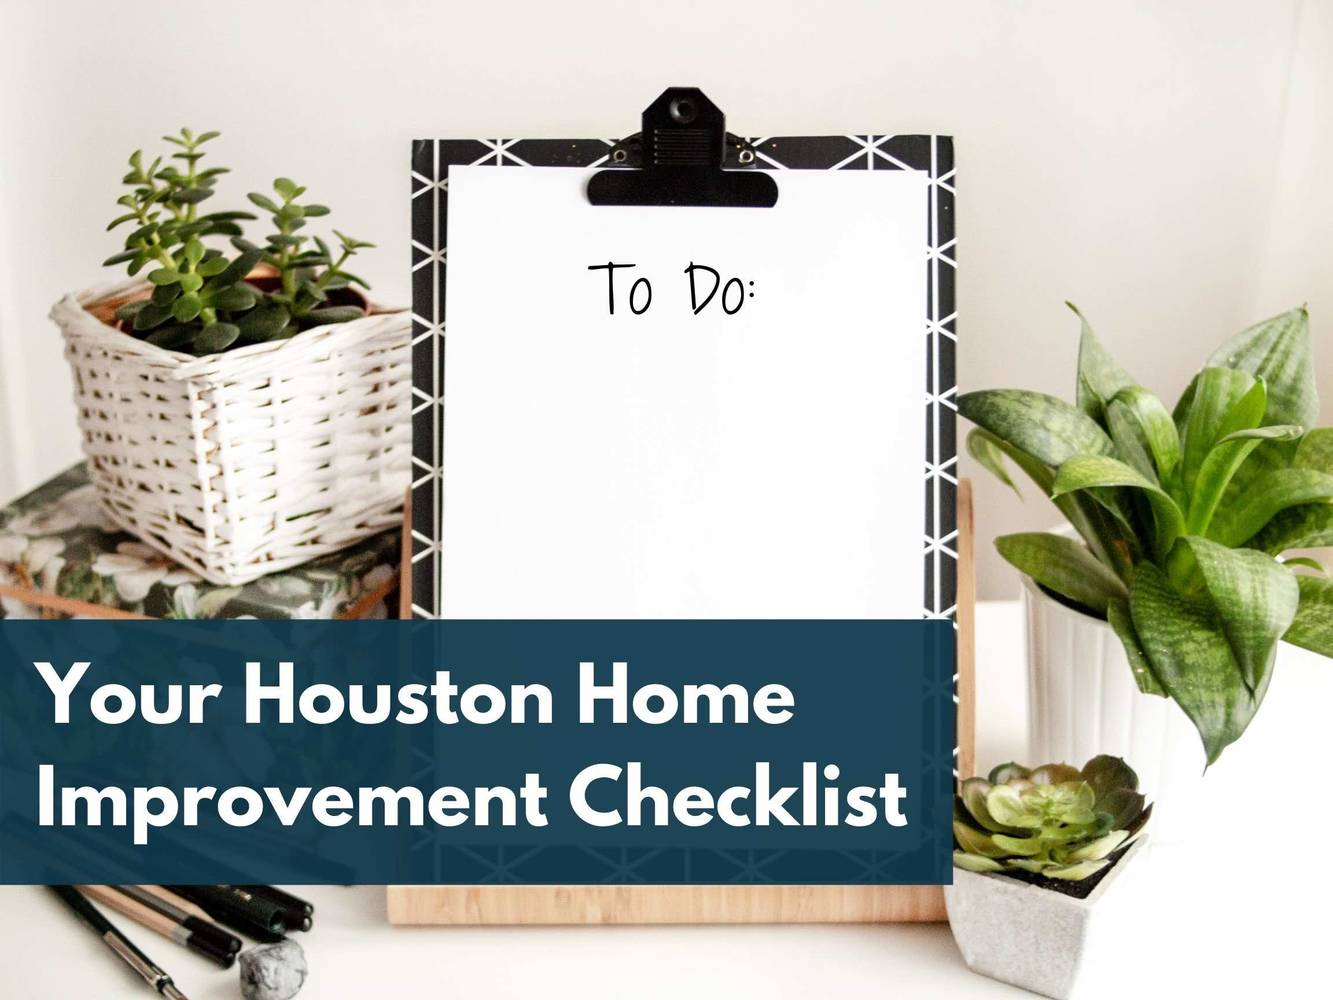 From The Best Houston Realtor To Sell My House: My Home Improvement Checklist